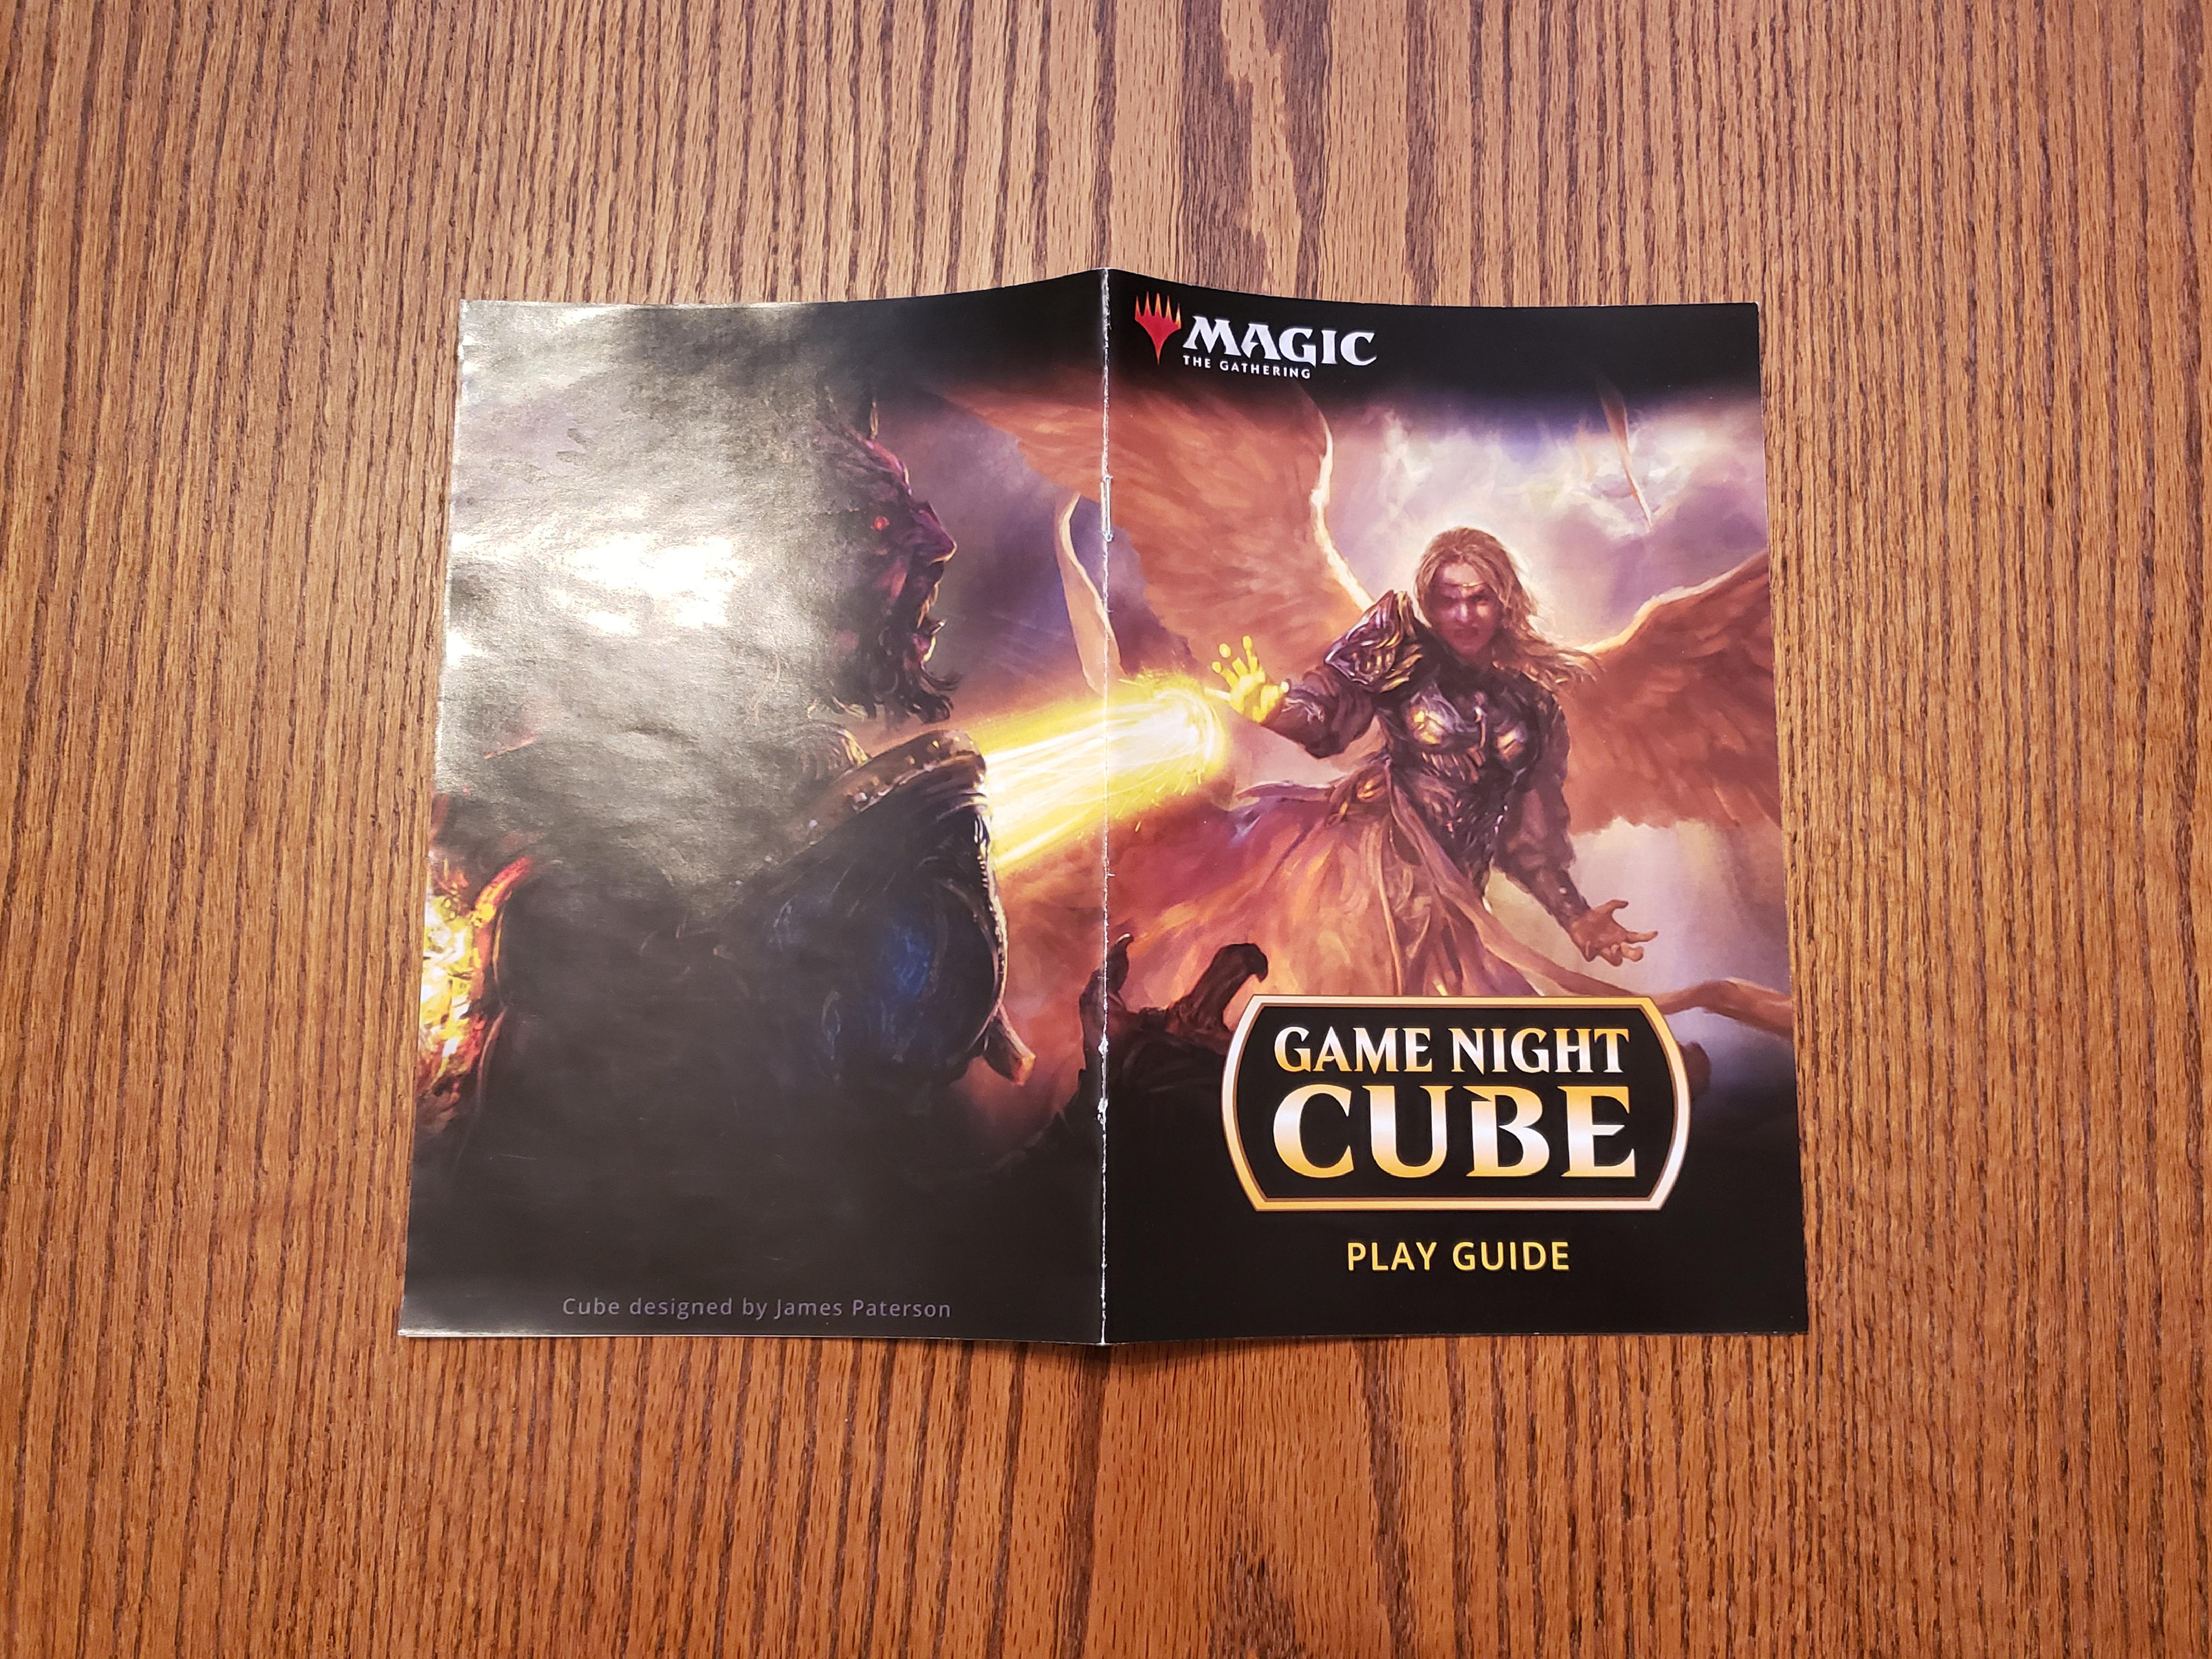 GameNightCube_6